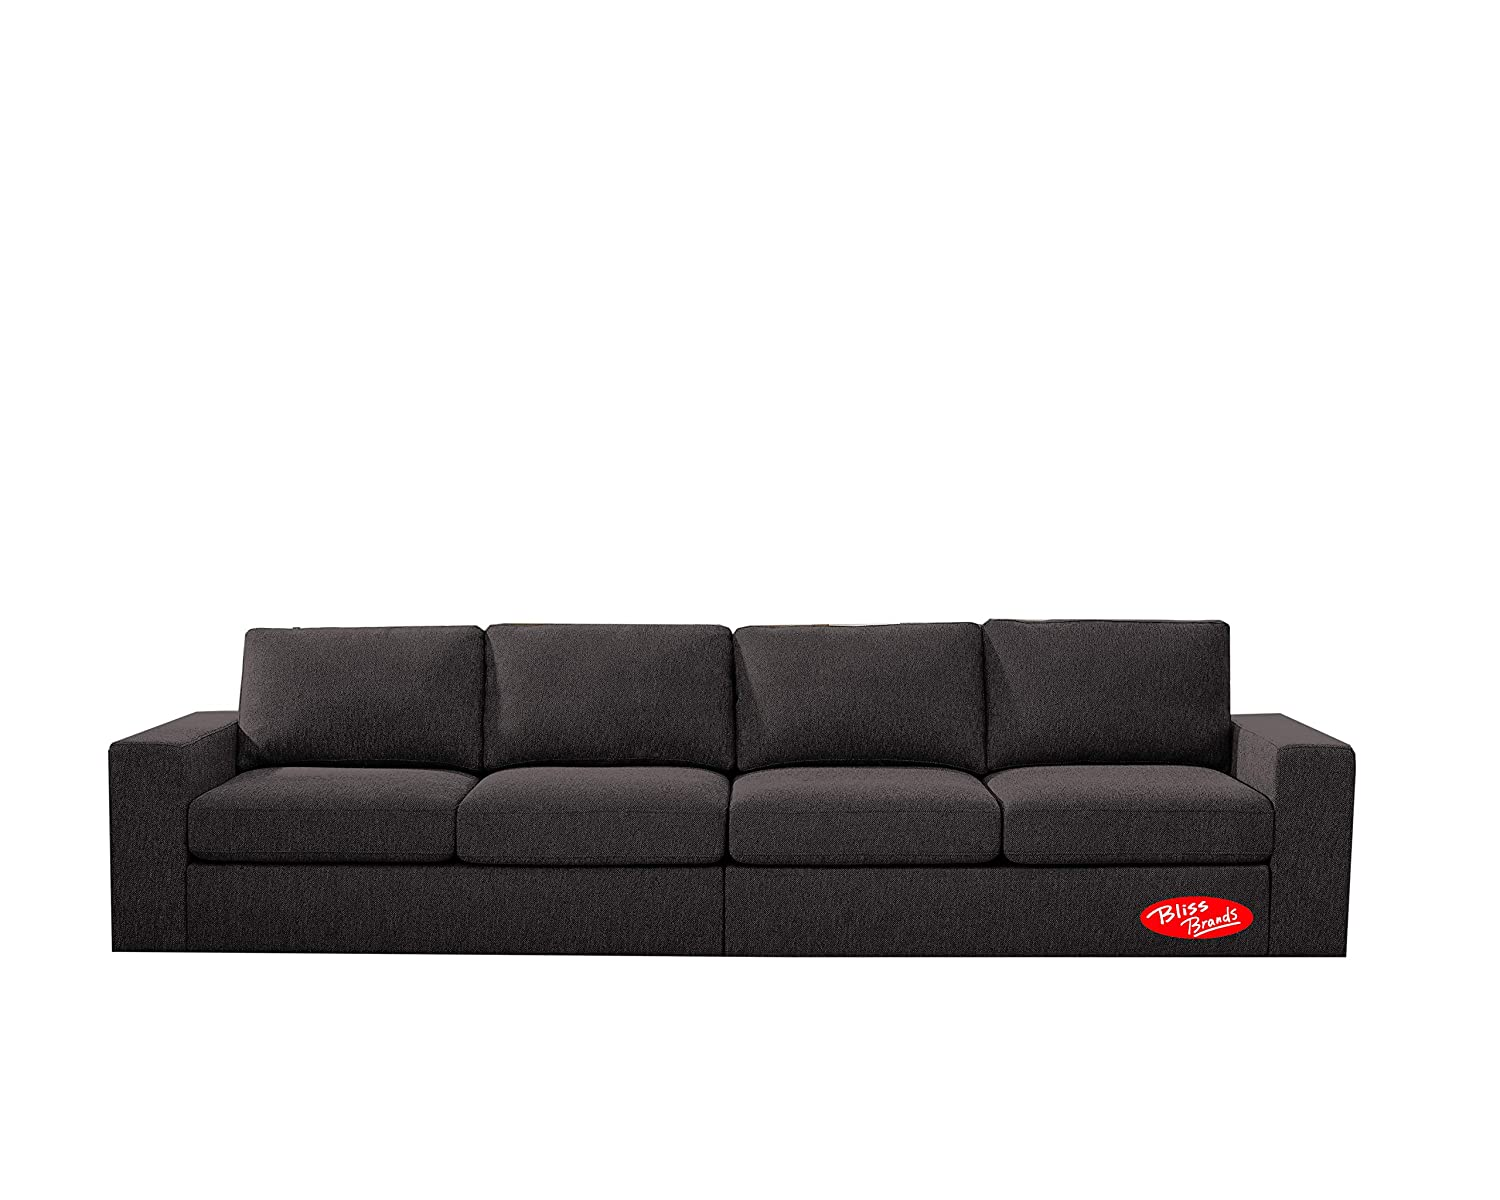 Amazon.com: Sectional Sofa, Easy-Assembly Linen Fabric ...